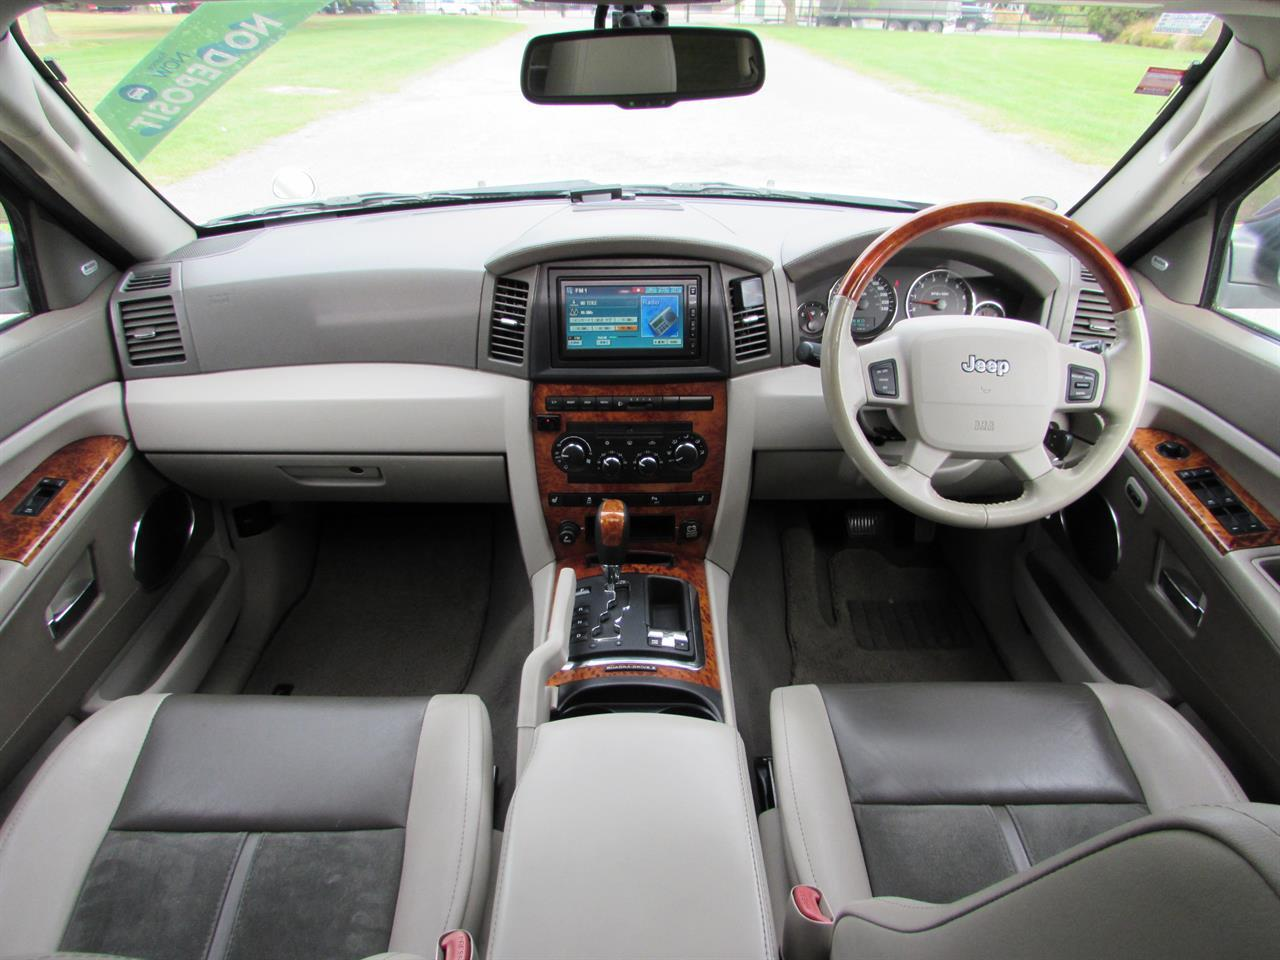 image-9, 2007 Jeep Grand Cherokee Limited 5.7L Hemi V8 at Christchurch